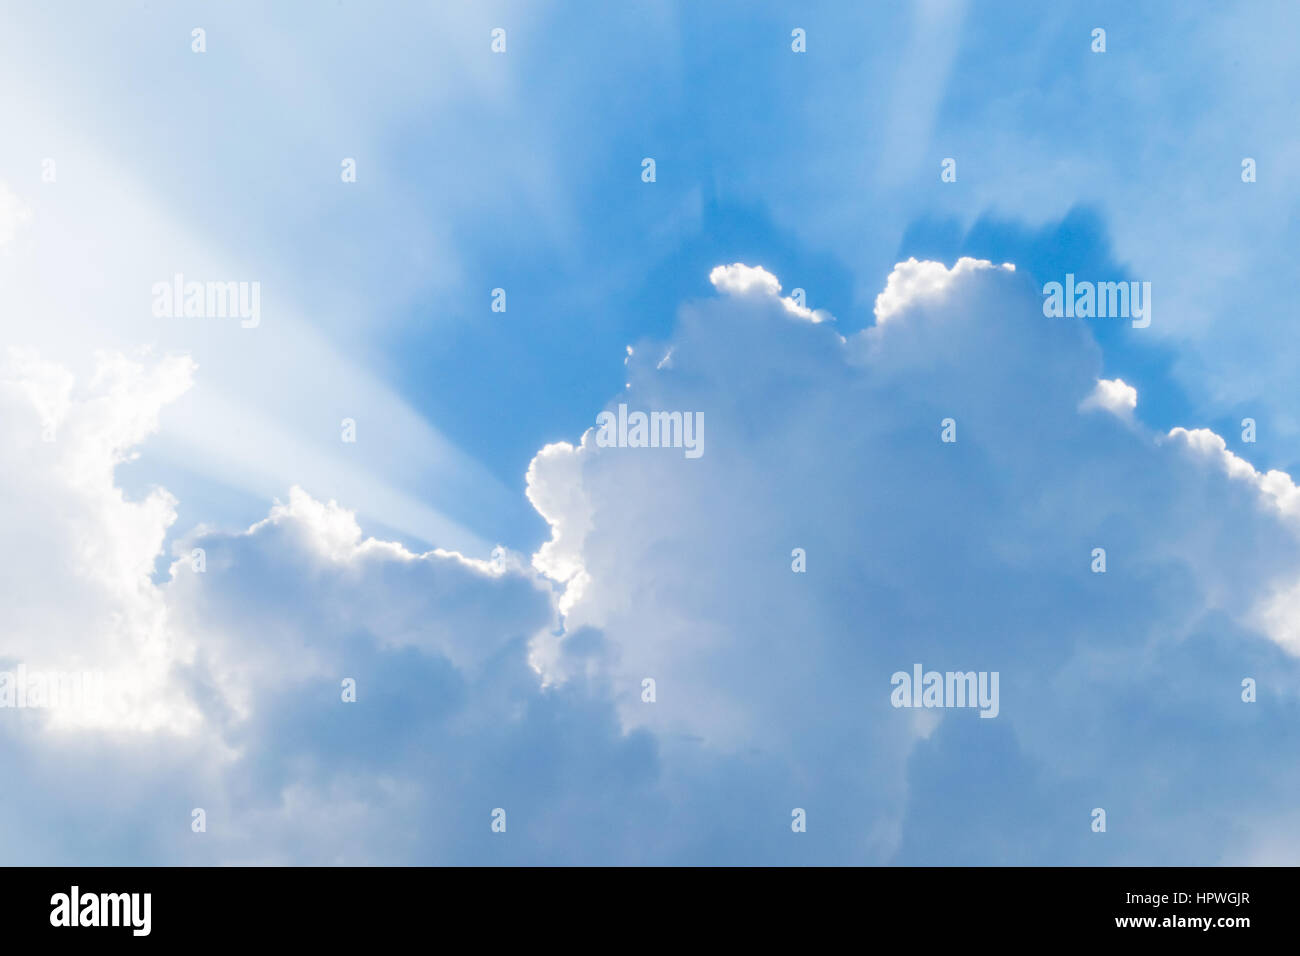 blue sky with rays after raining. Rays appearing with cloud burst - Stock Image